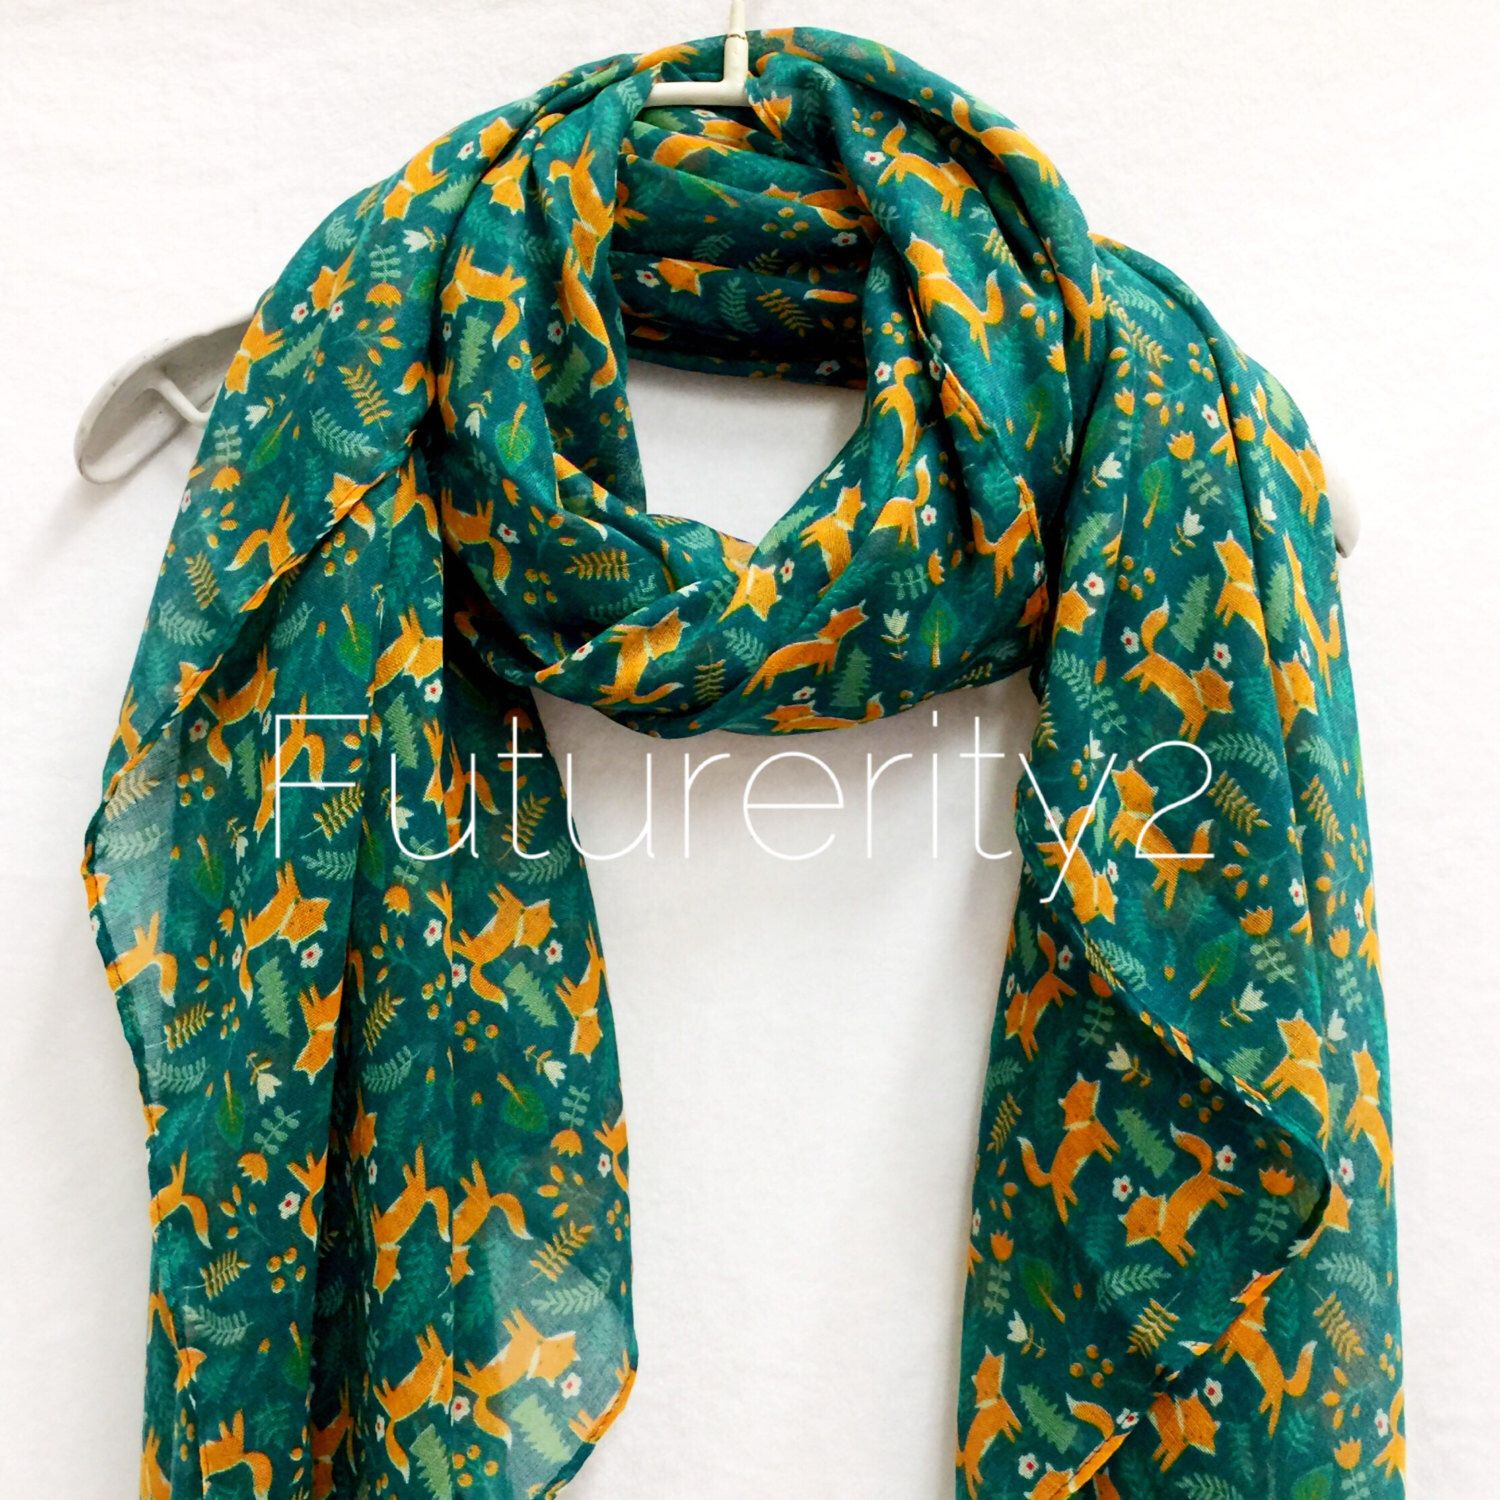 Woodland Fox Green scarf / Spring Summer Scarf / Autumn Scarf / Gifts For Her / Women Scarves / Handmade / Accessories / Christmas Gift by Futurerity2 on Etsy https://www.etsy.com/ie/listing/472705422/woodland-fox-green-scarf-spring-summer